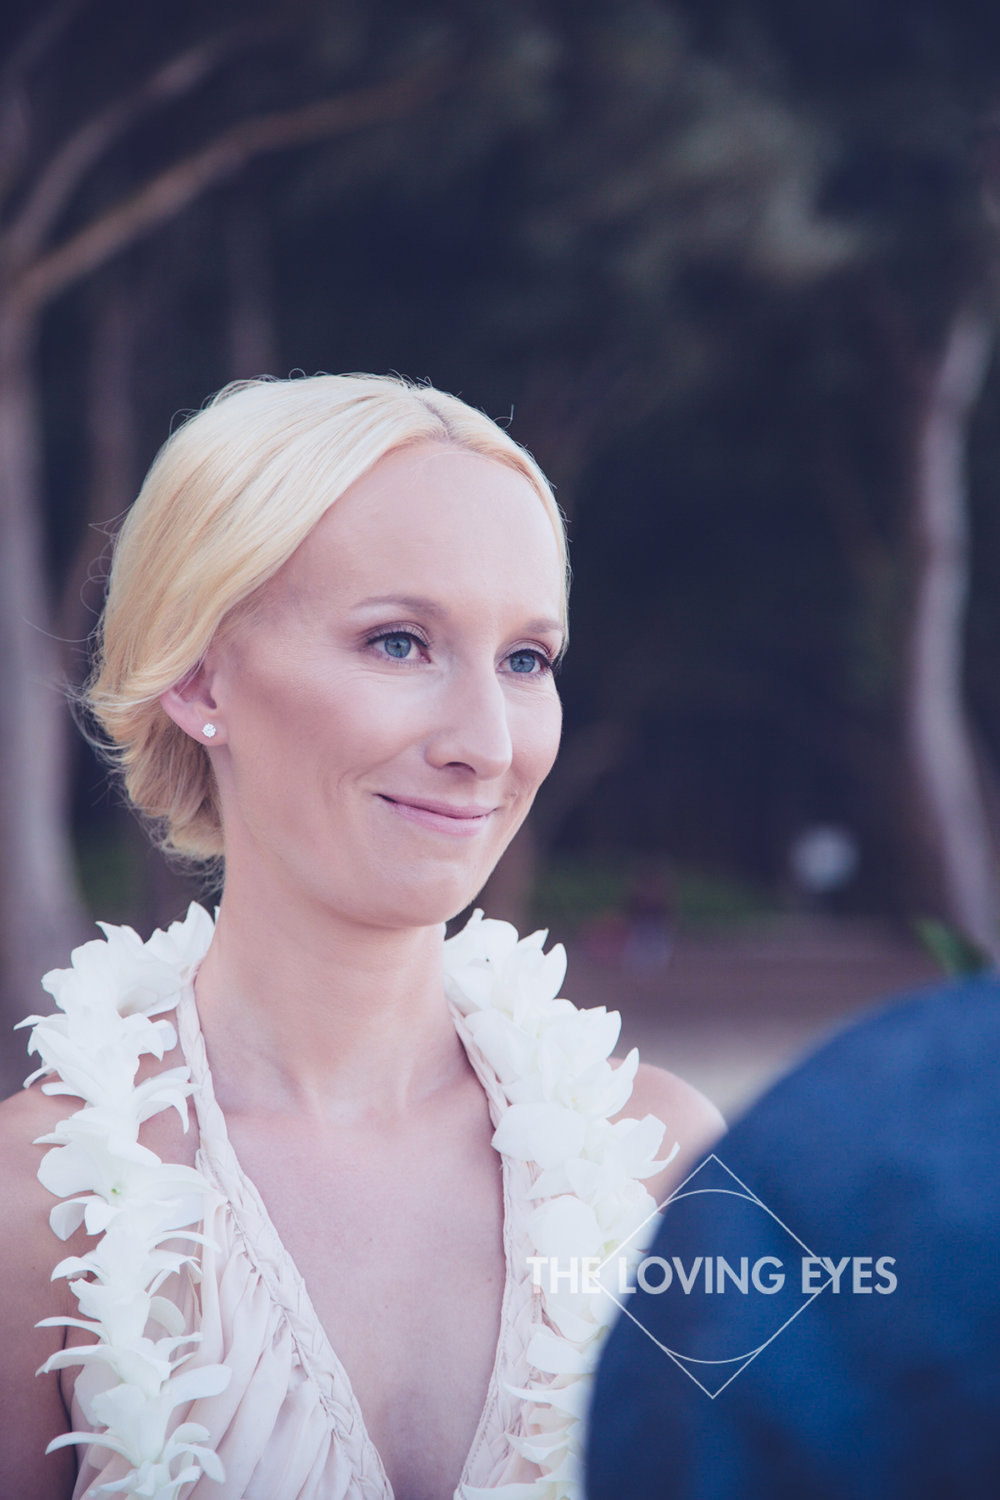 White orchid lei for bride for Hawaiian beach elopement